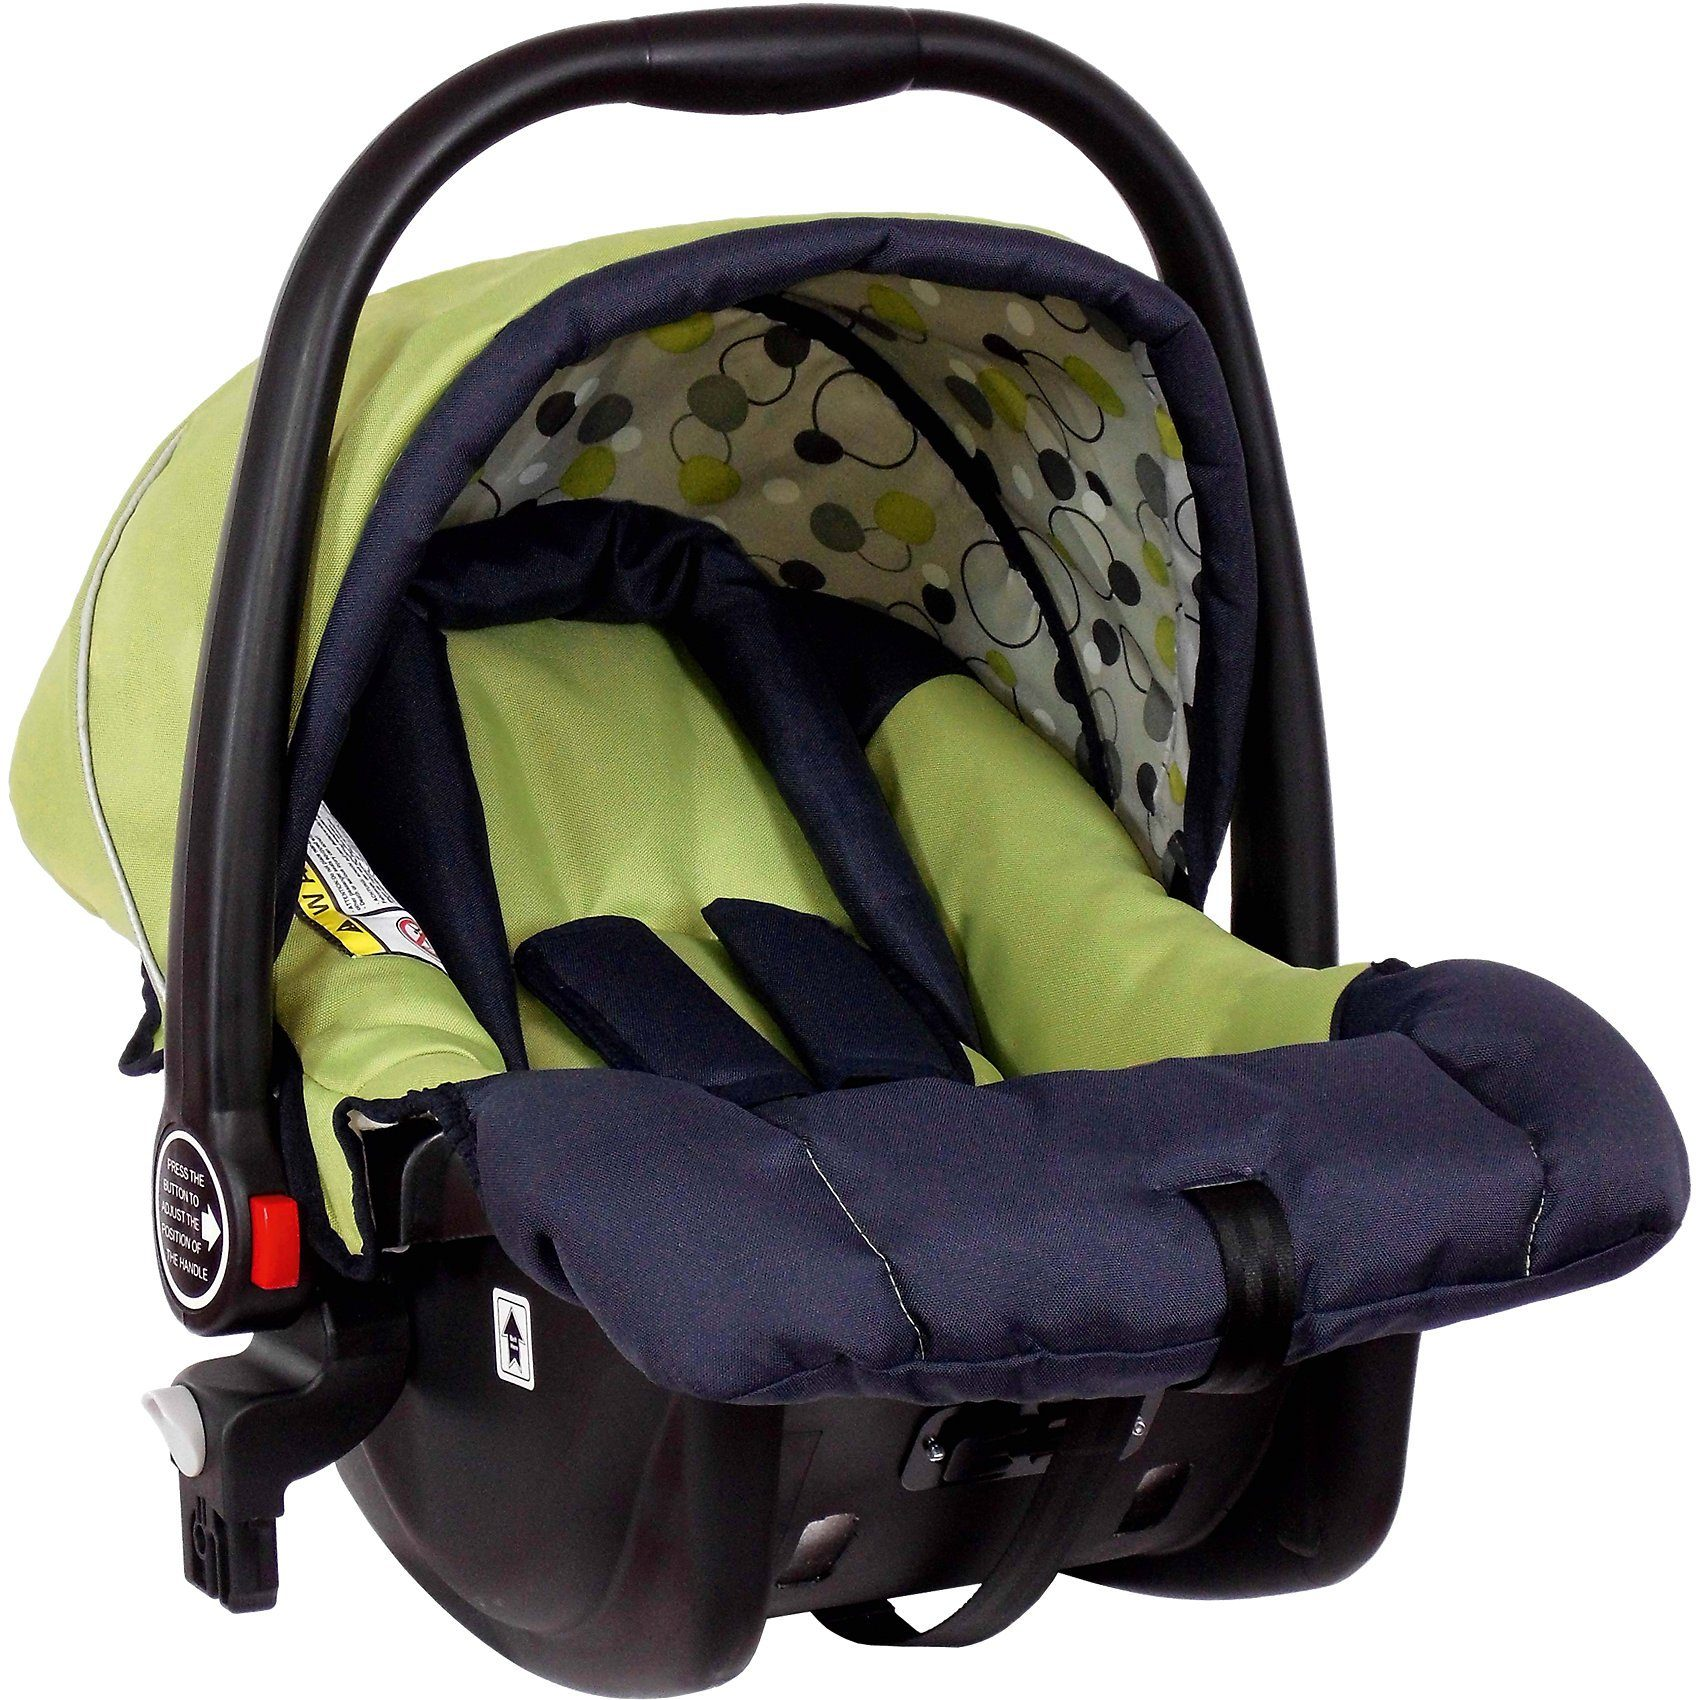 Zekiwa Babyschale für Buggy Jazz Single, green